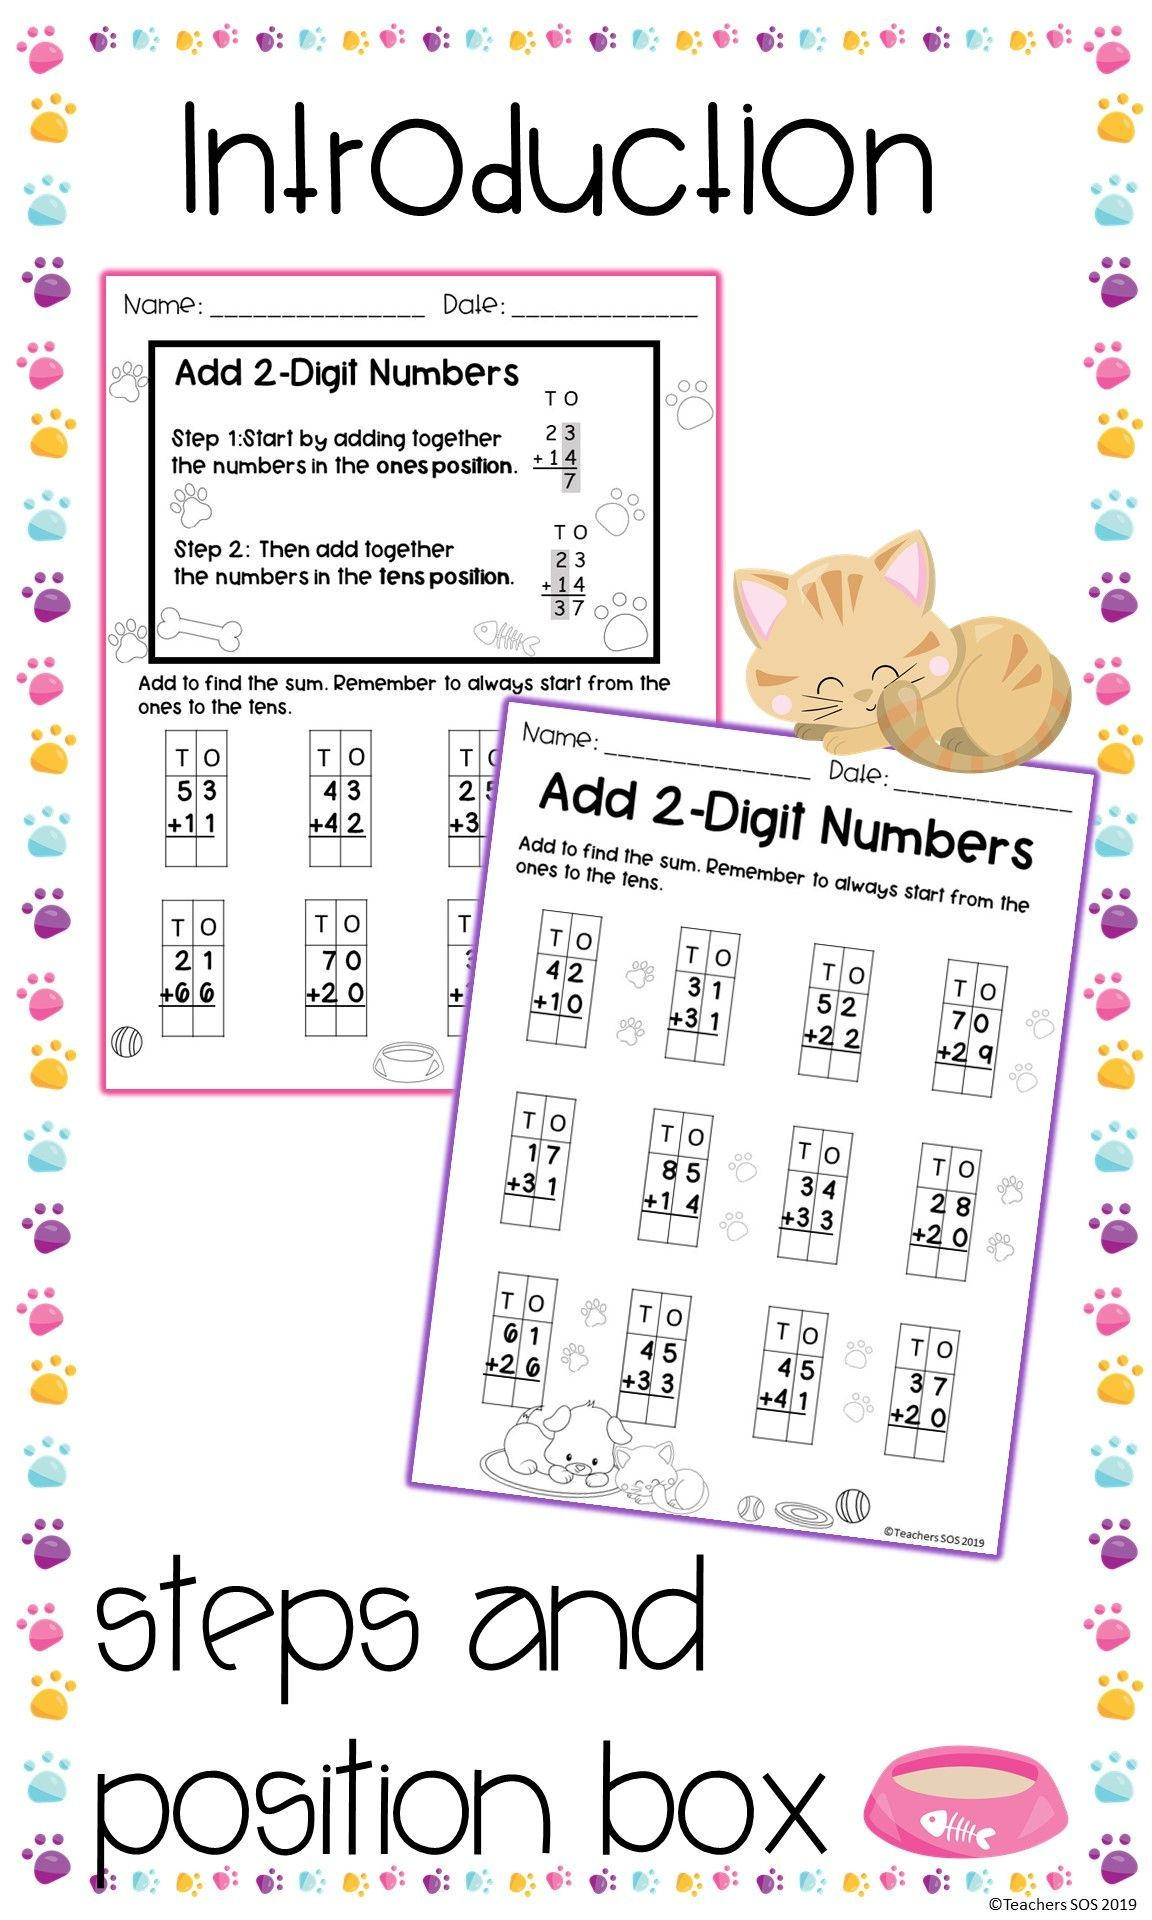 Adding Two Digit Numbers No Regrouping Worksheets Distance Learning In 2020 Regrouping Guided Practice Practices Worksheets Adding two digit numbers worksheets